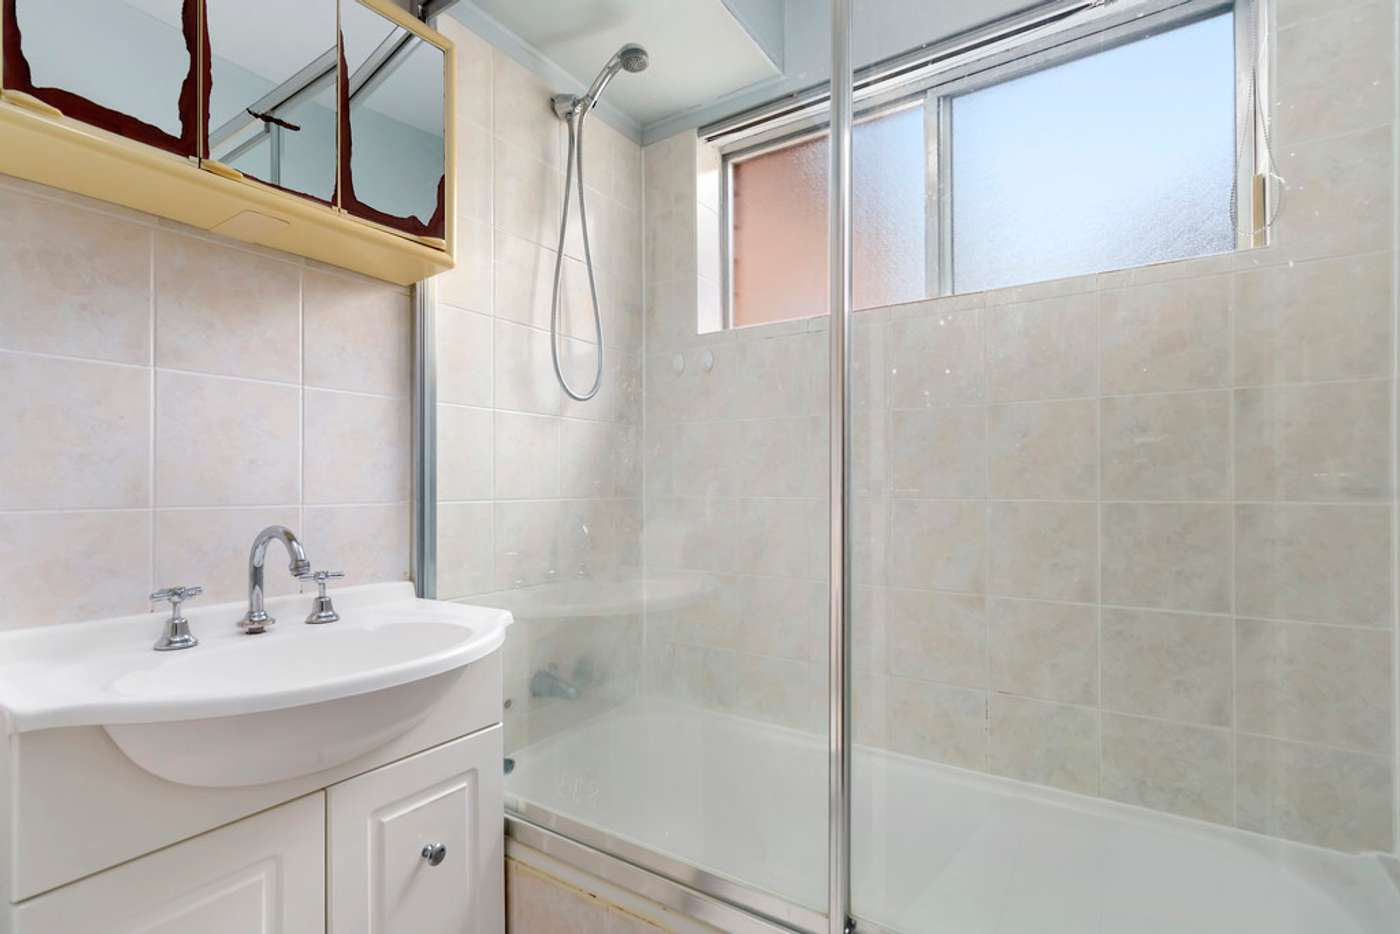 Sixth view of Homely unit listing, 12/13-15 Nagle Street, Liverpool NSW 2170